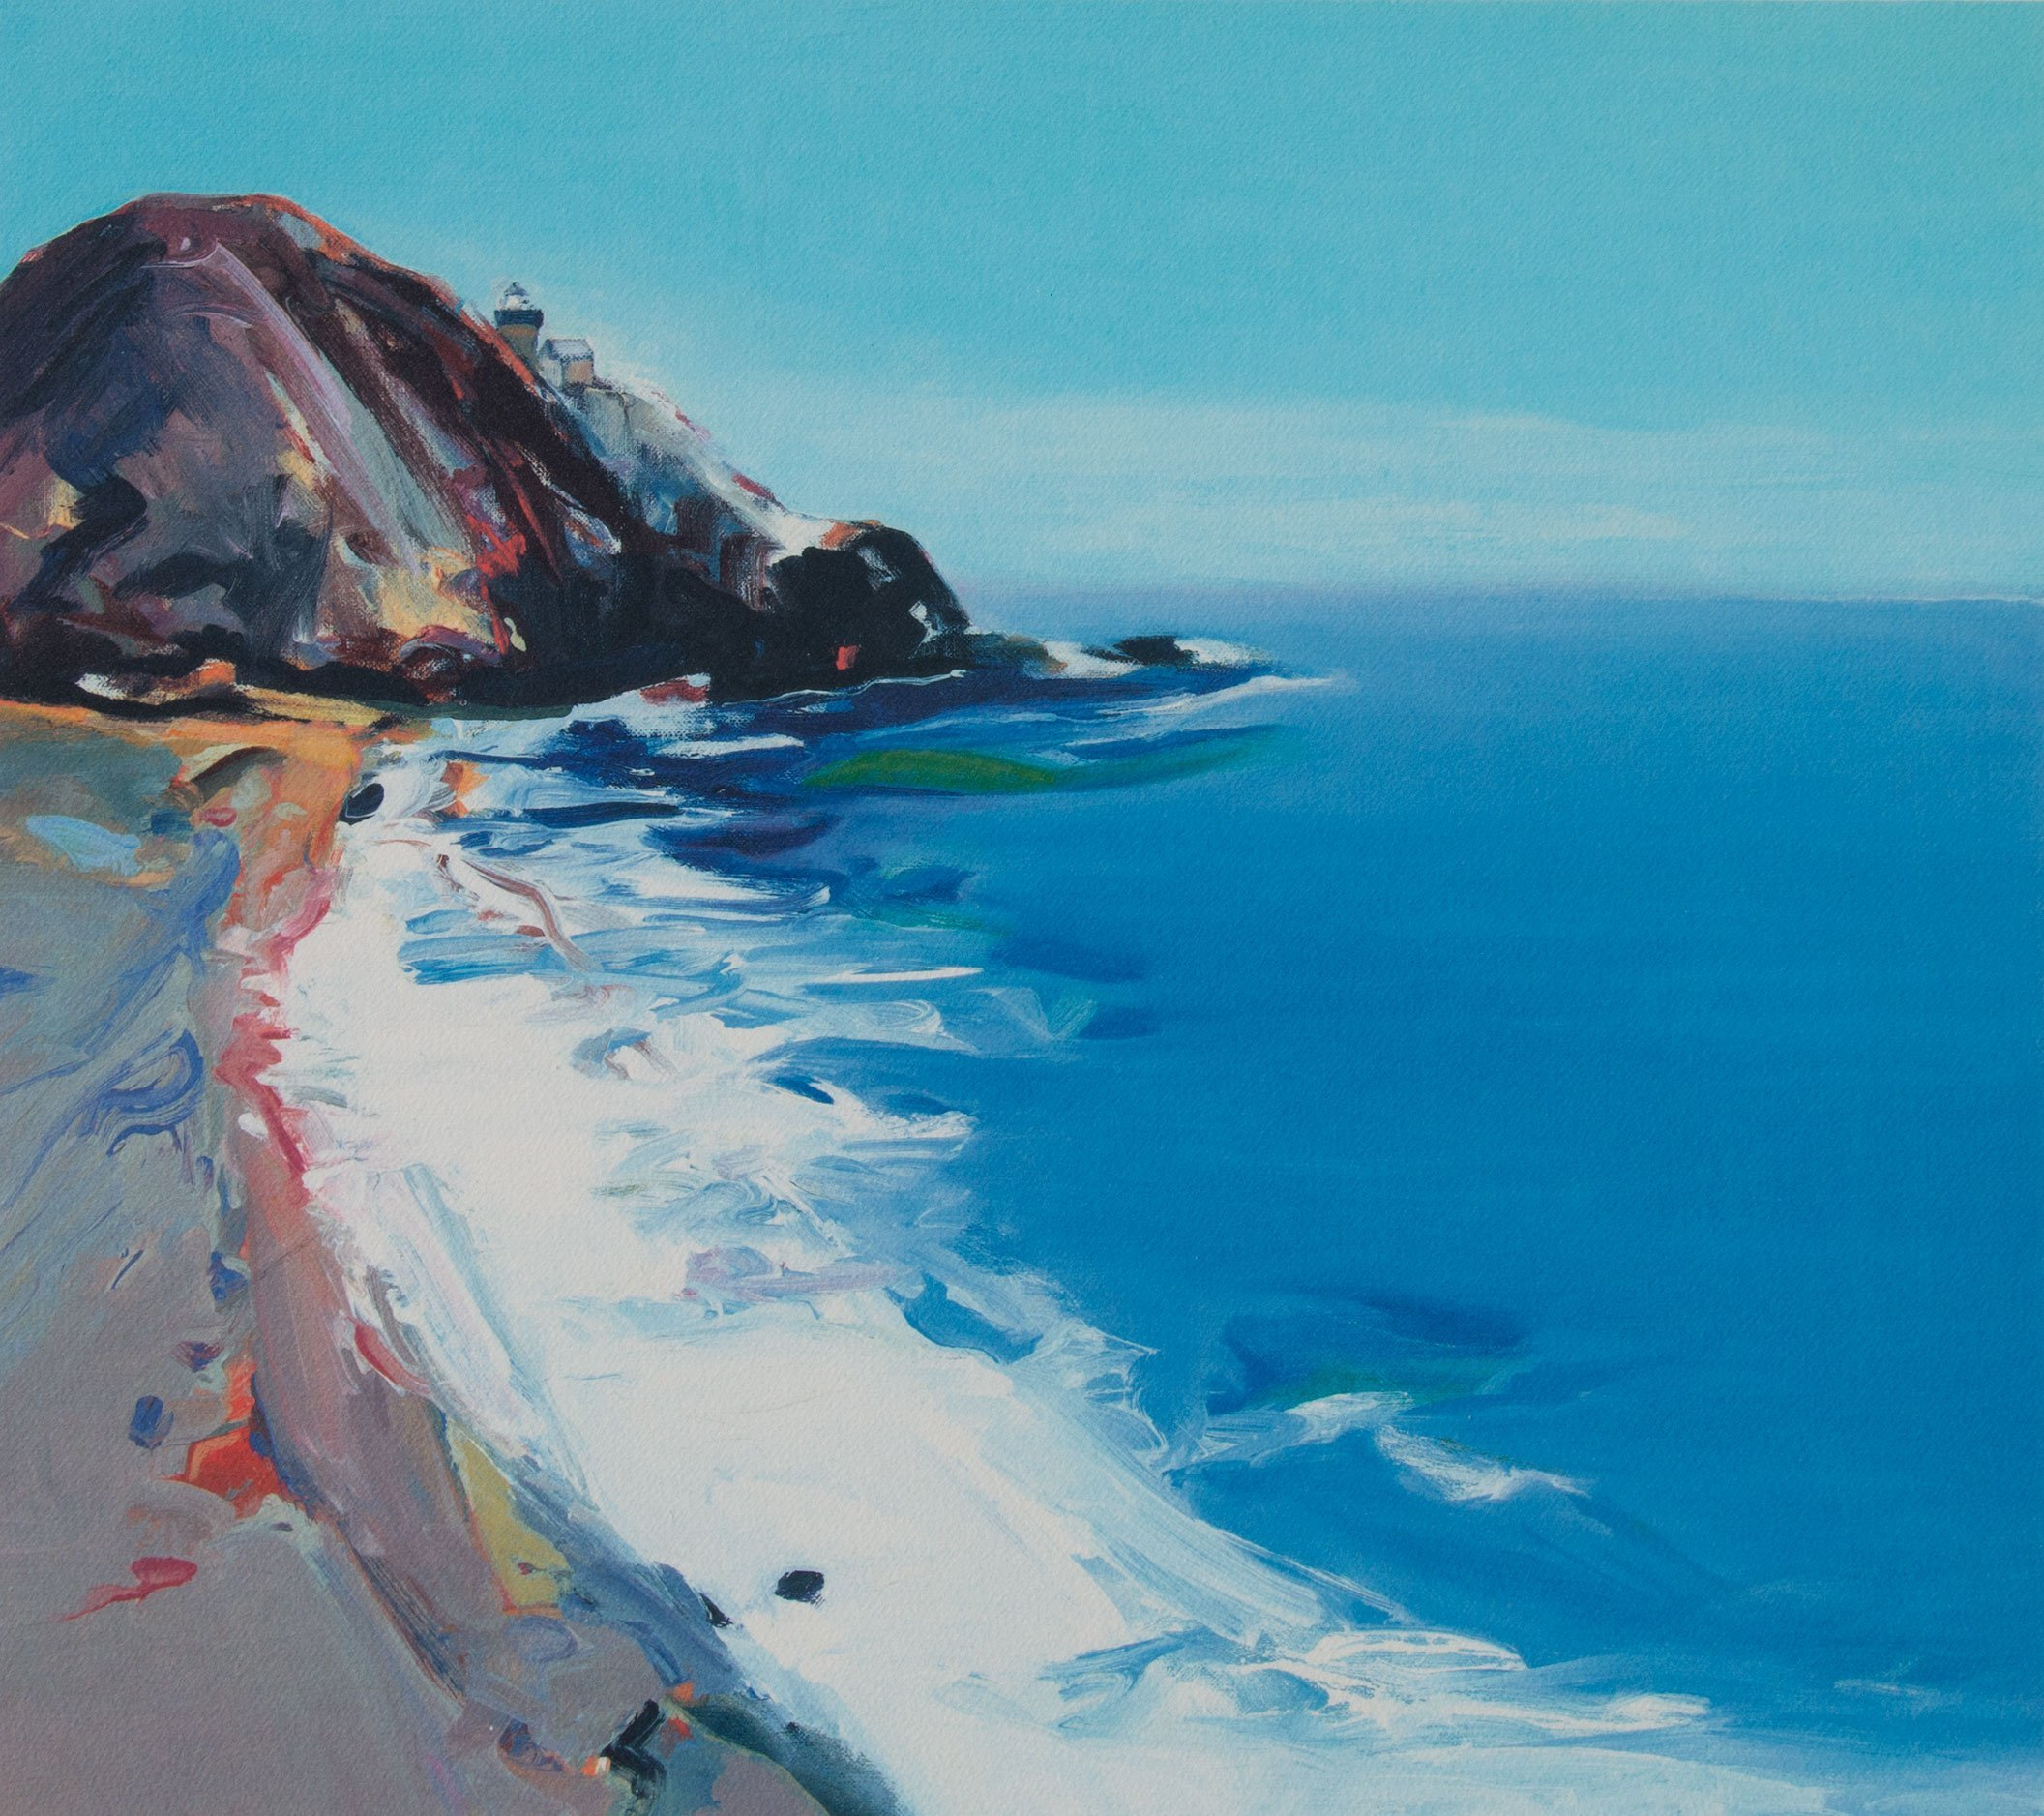 Gregory Kondos, Point Sur 15/125, 2001